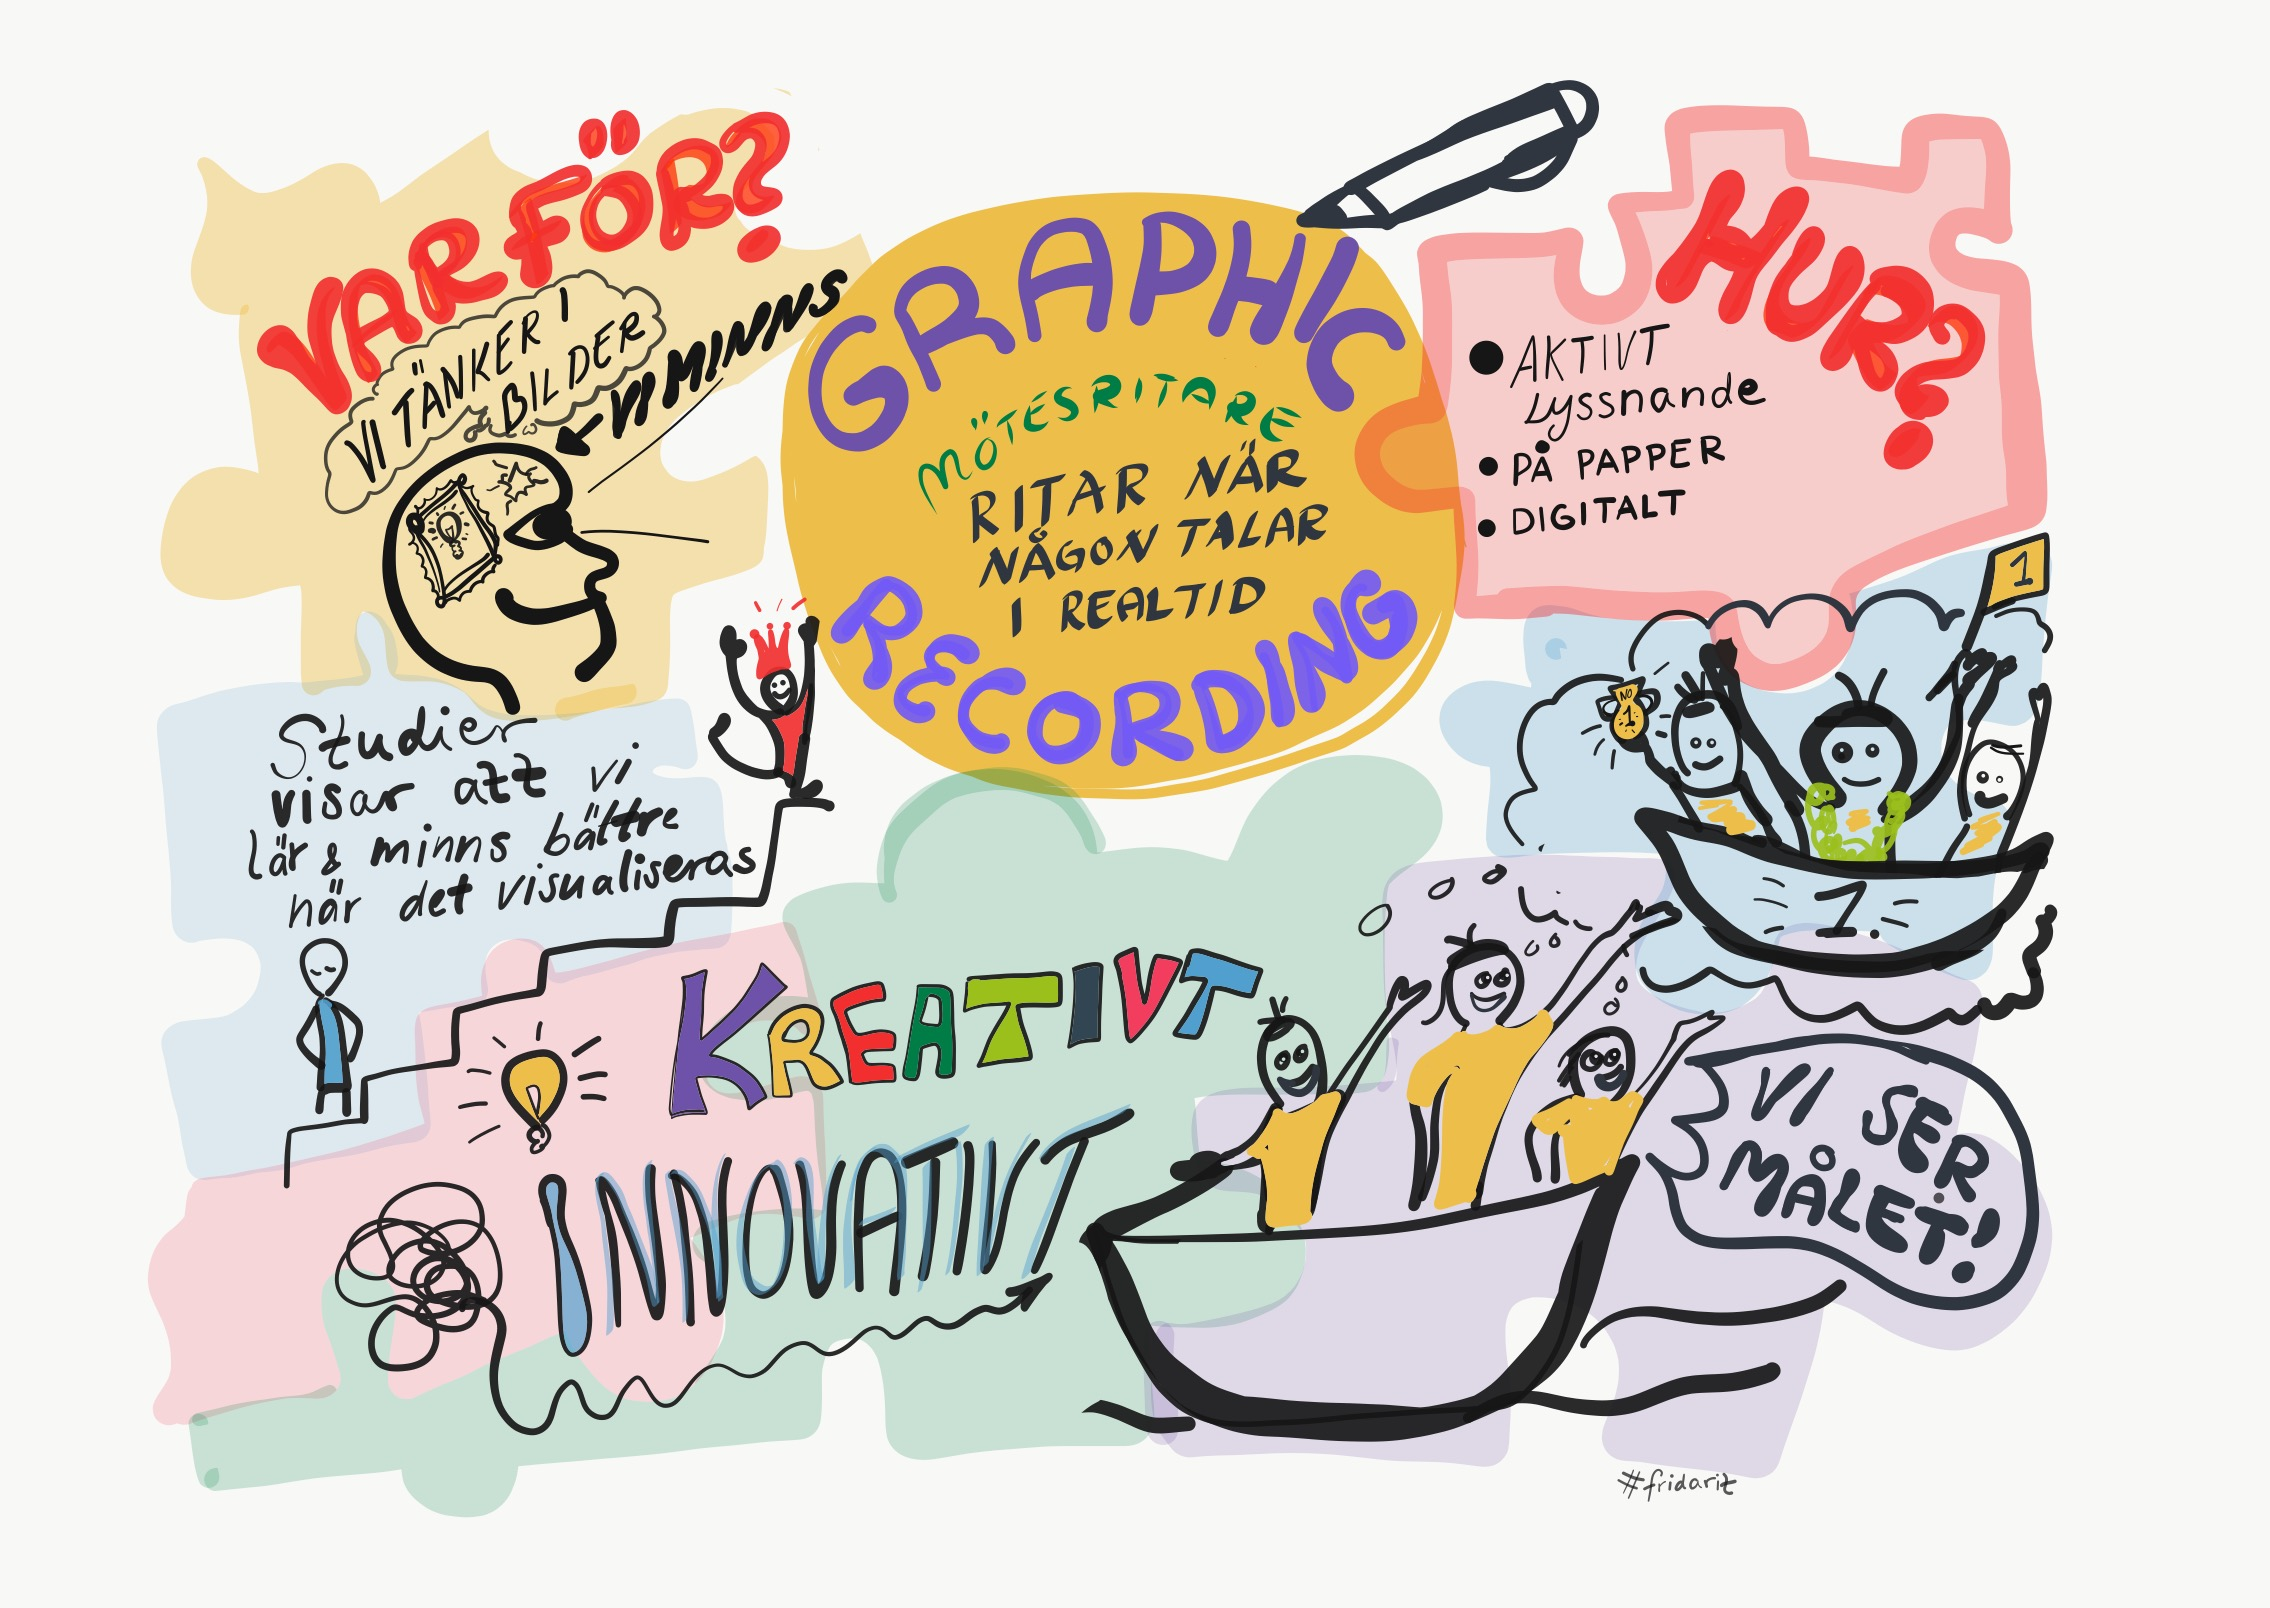 Made by / Frida Panoussis aka Frida Rit #GraphicRecorder #ProfessinonalDoodler #Mötesritare